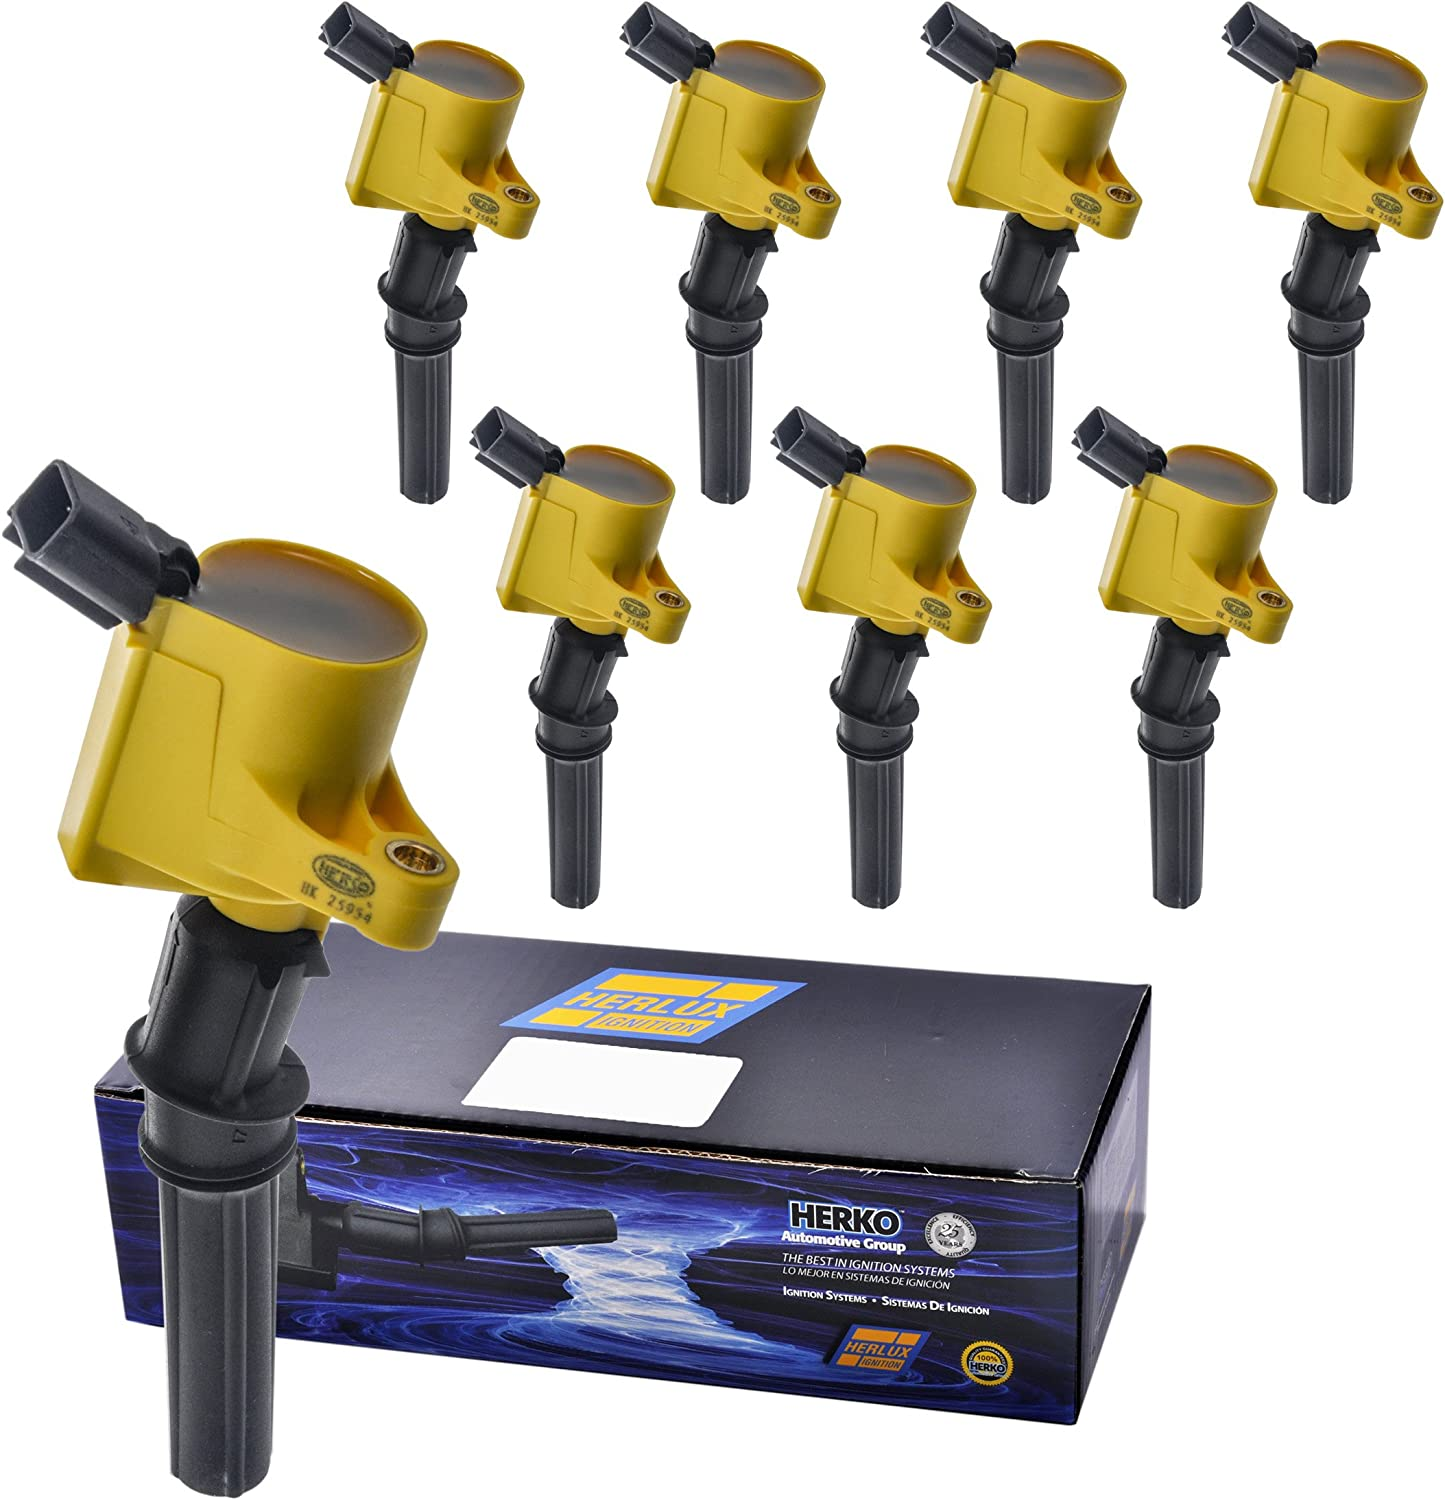 Set of 4 Yellow Aftermarket Ignition Coils C1139 /& Motorcraft Spark Plugs SP493